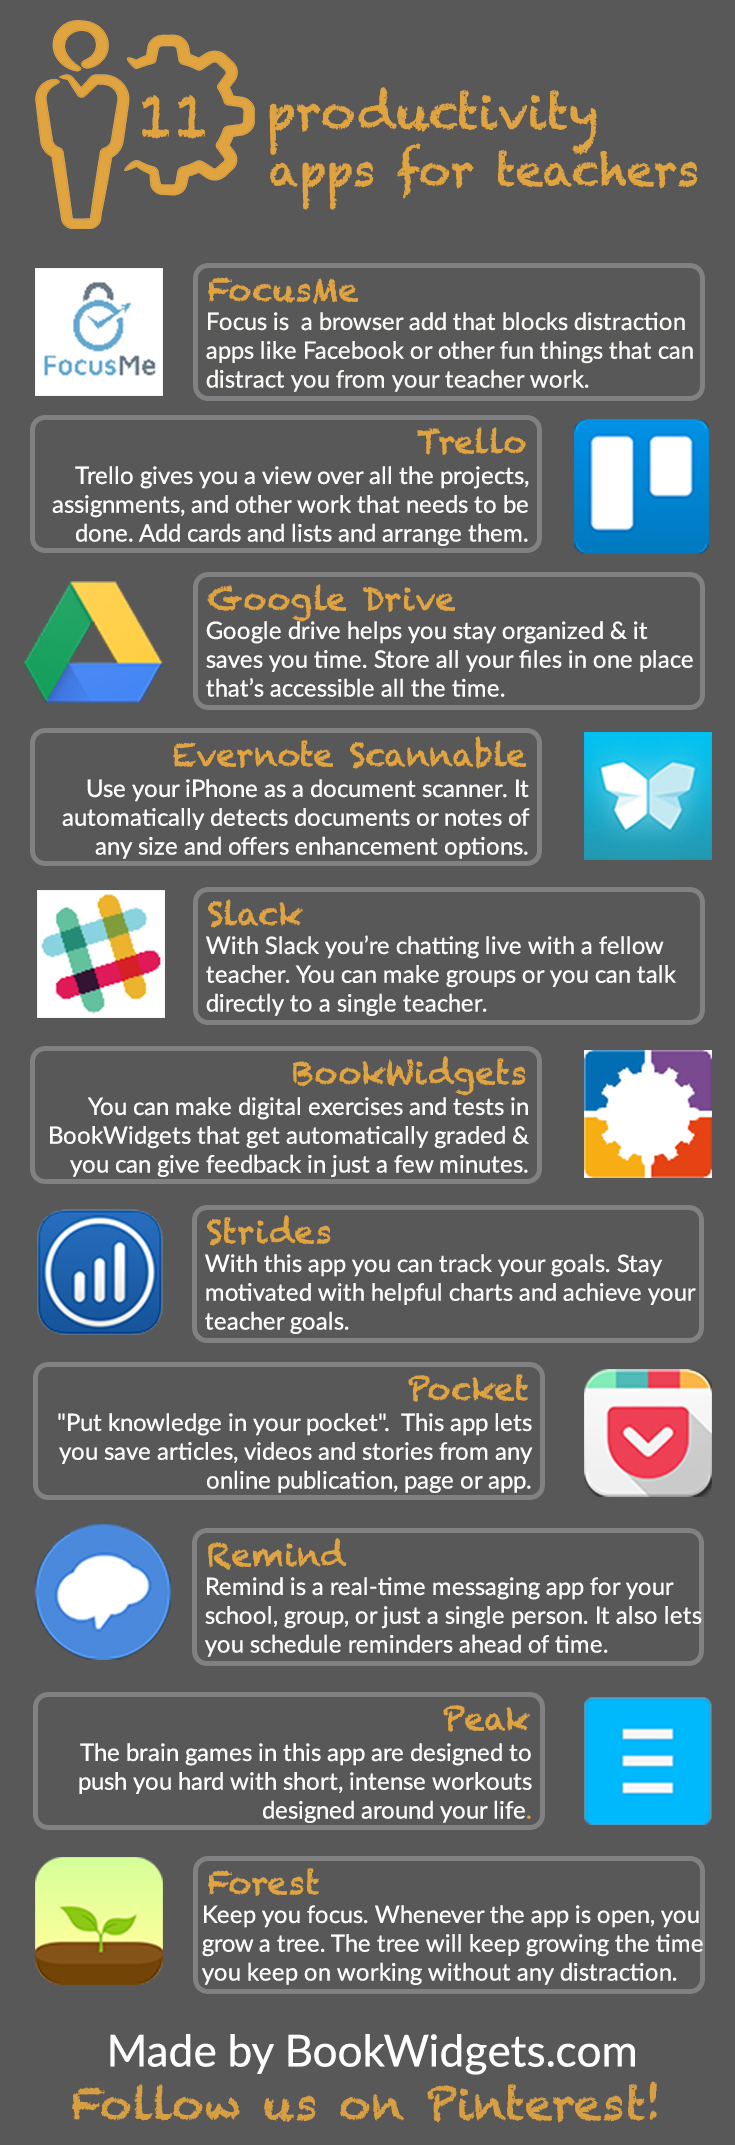 11 Productivity apps for teachers